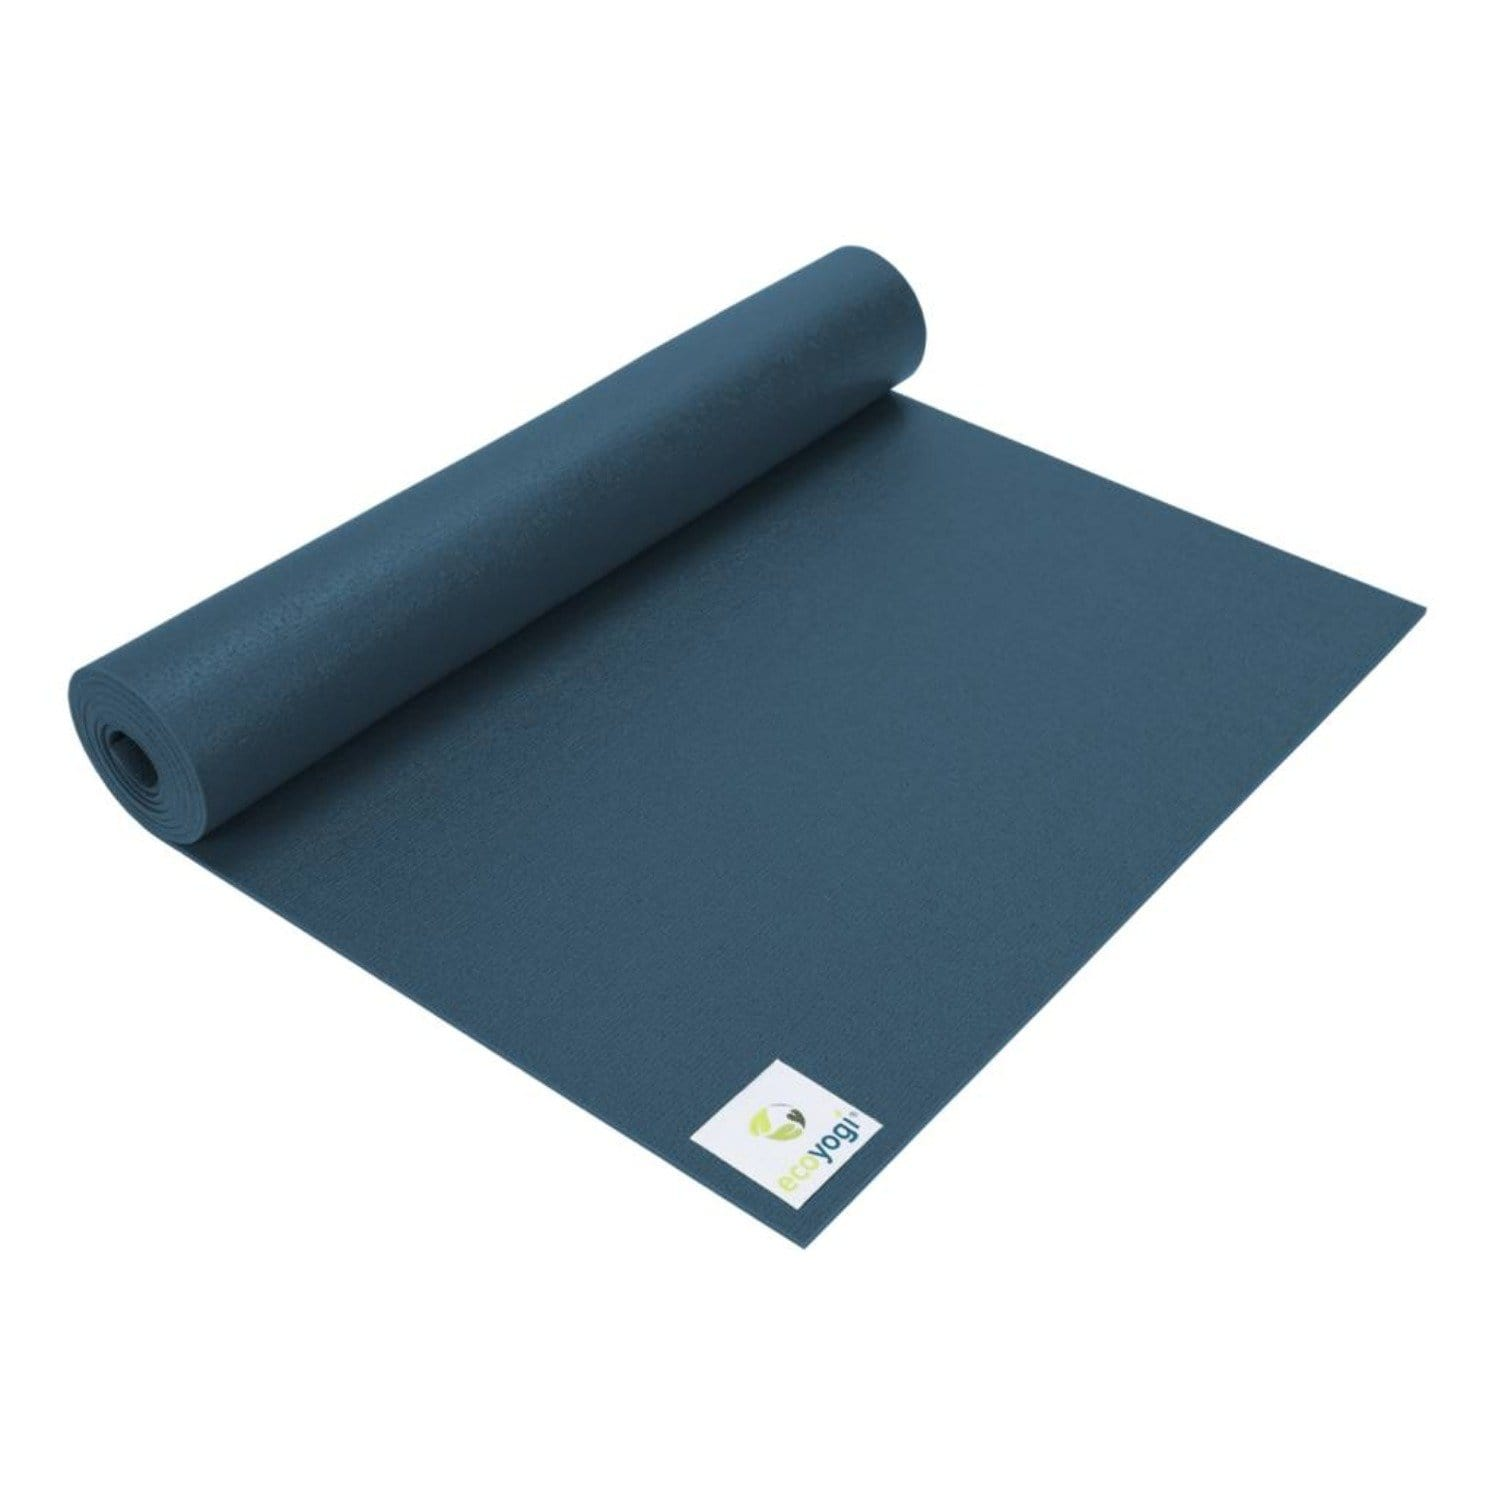 Emission free PVC yoga mat certified blue